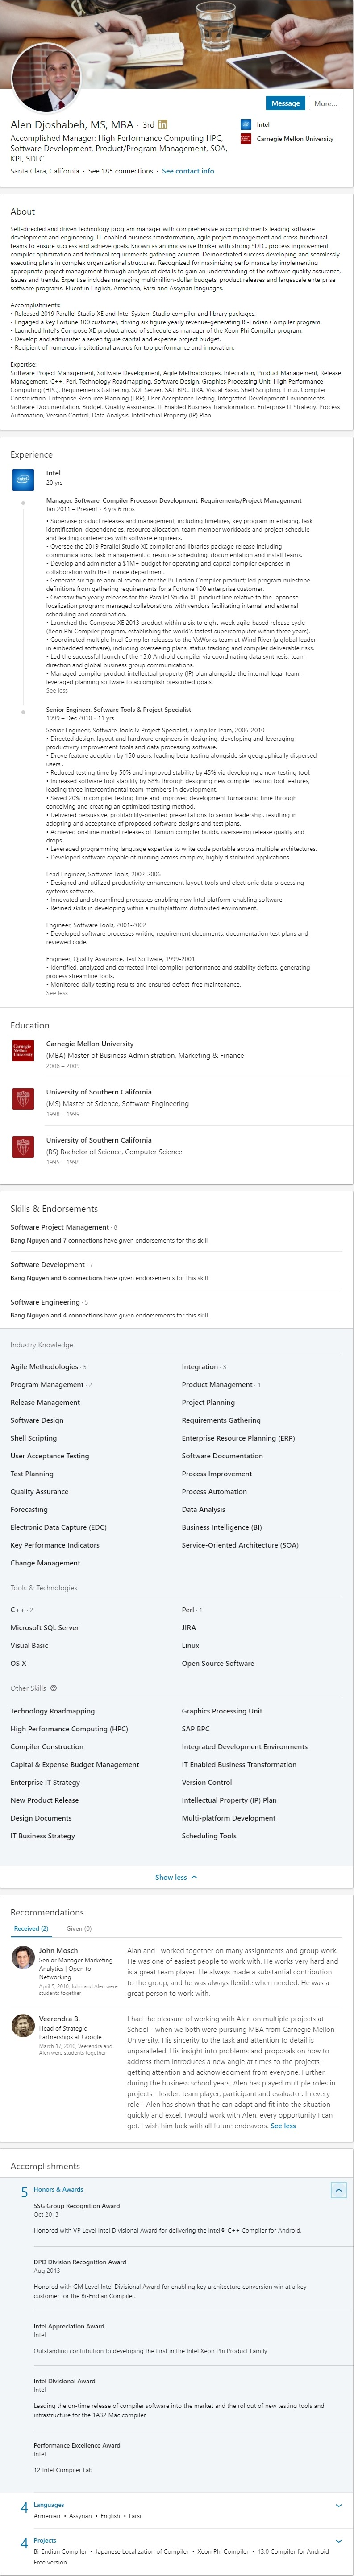 Sample LinkedIn profile example software engineering 2500